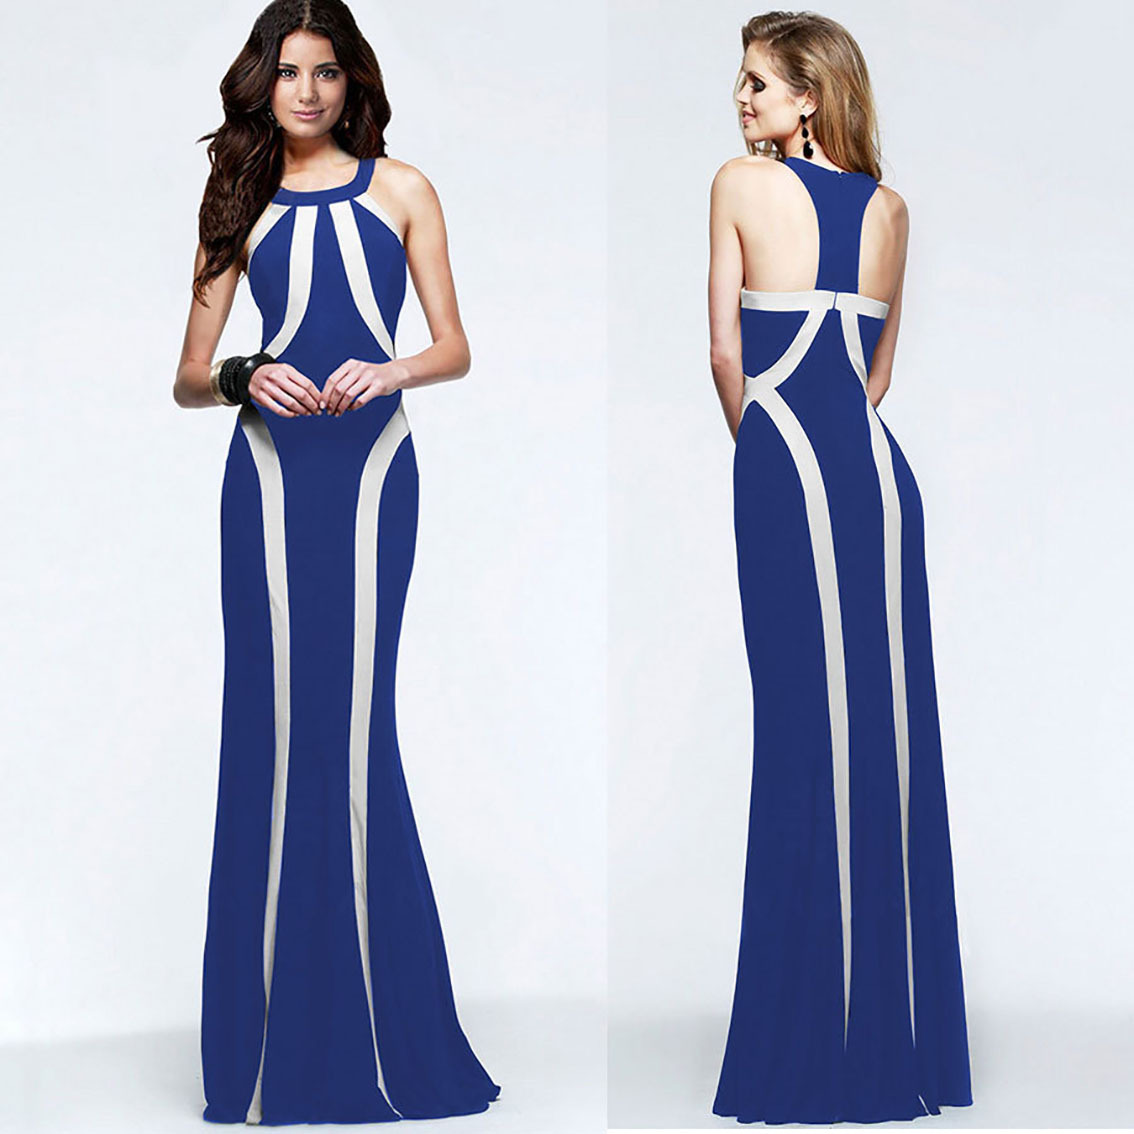 Designer Halter Dresses Promotion-Shop for Promotional Designer ...